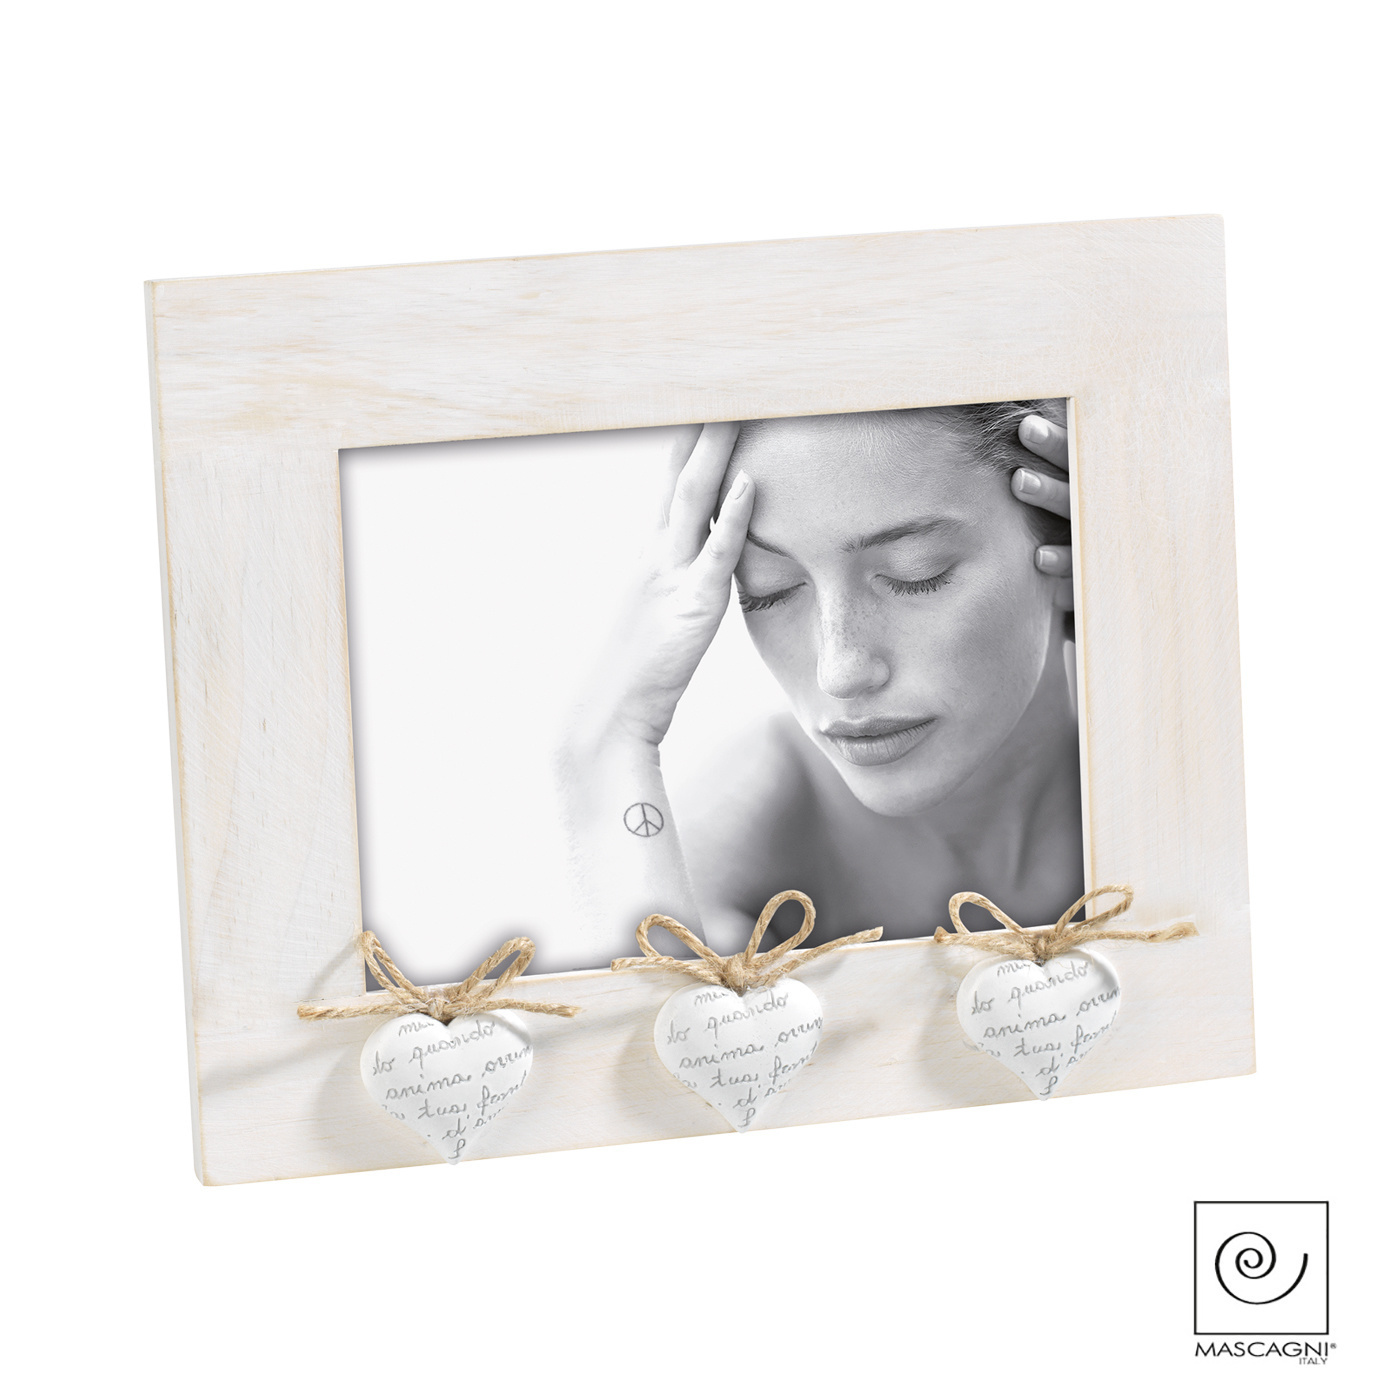 Art Mascagni A1106 PHOTO FRAME 13X18